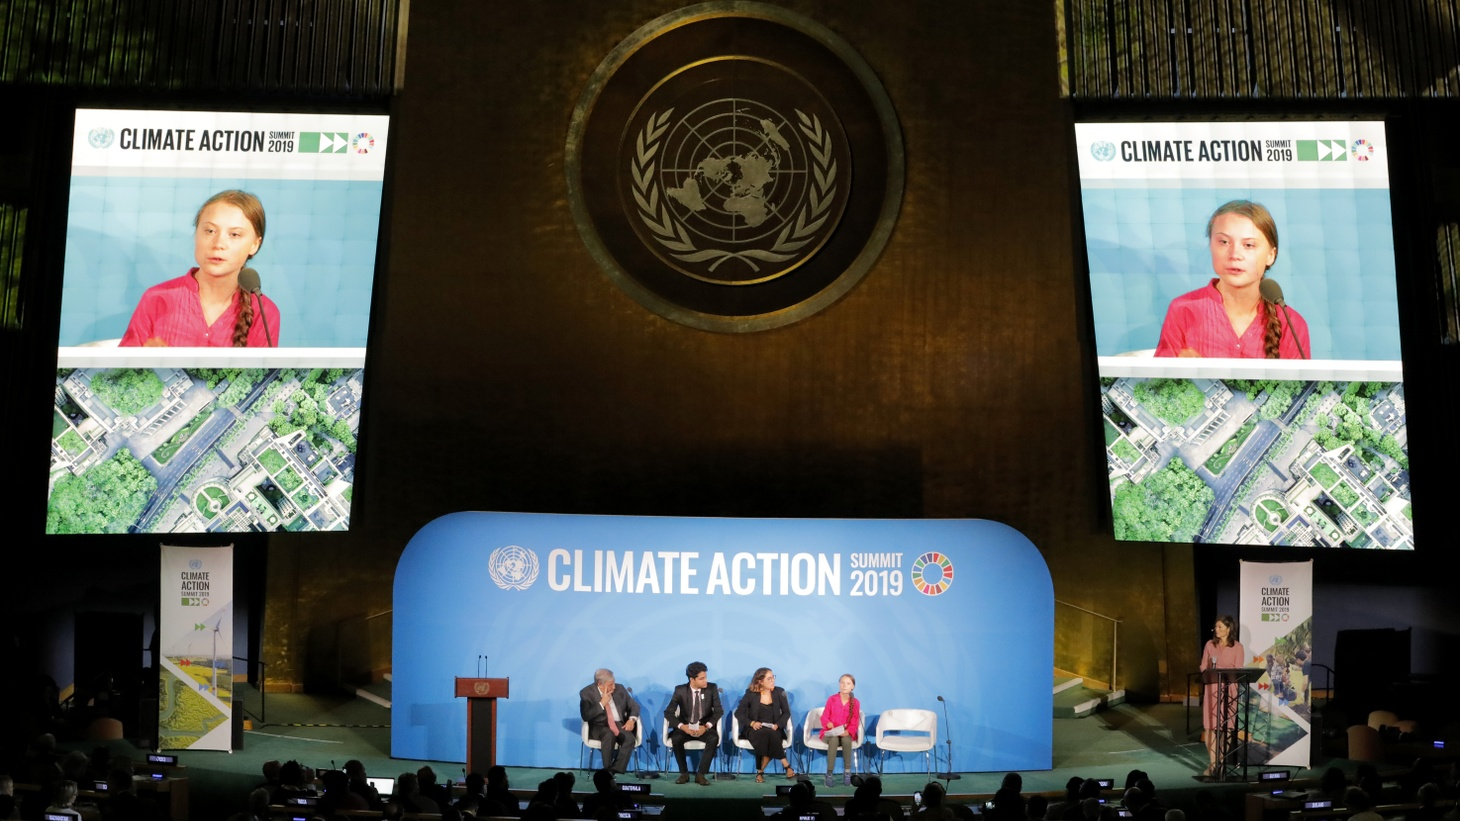 16-year-old Swedish Climate activist Greta Thunberg speaks at the 2019 United Nations Climate Action Summit at U.N. headquarters in New York City, New York, U.S., September 23, 2019.